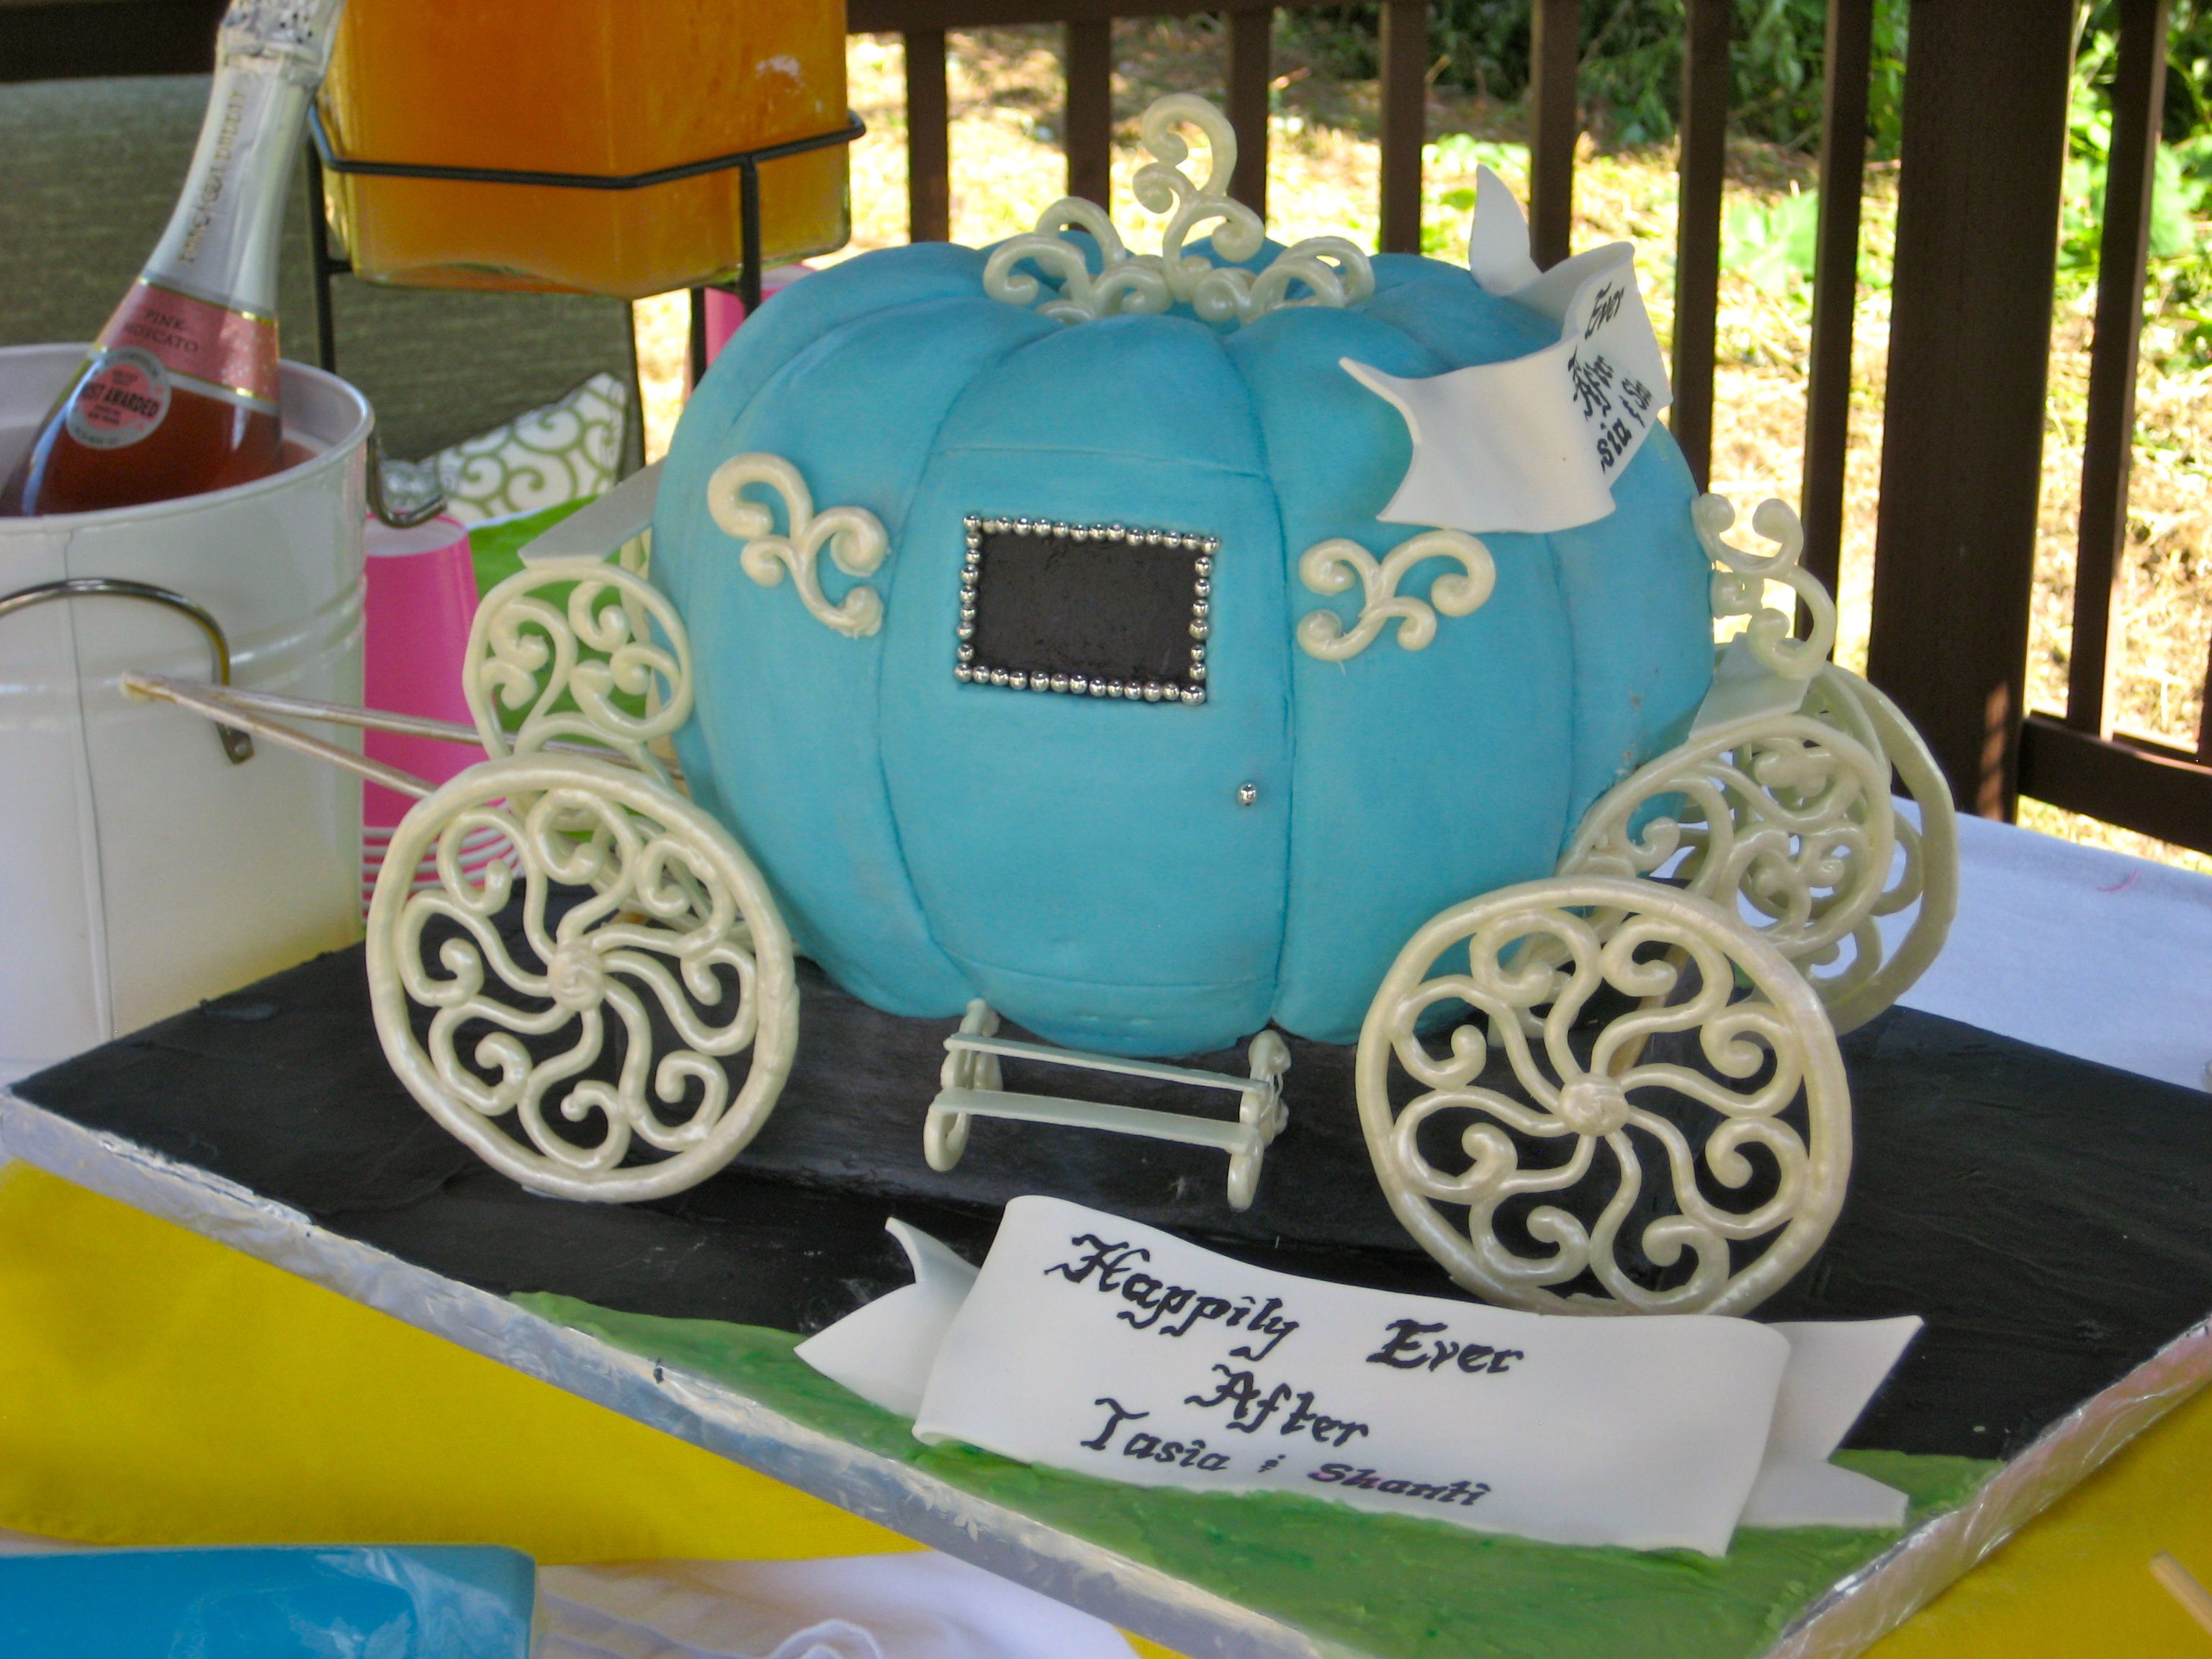 Cinderella pumpkin coach cake made by Let Them Eat Cake in